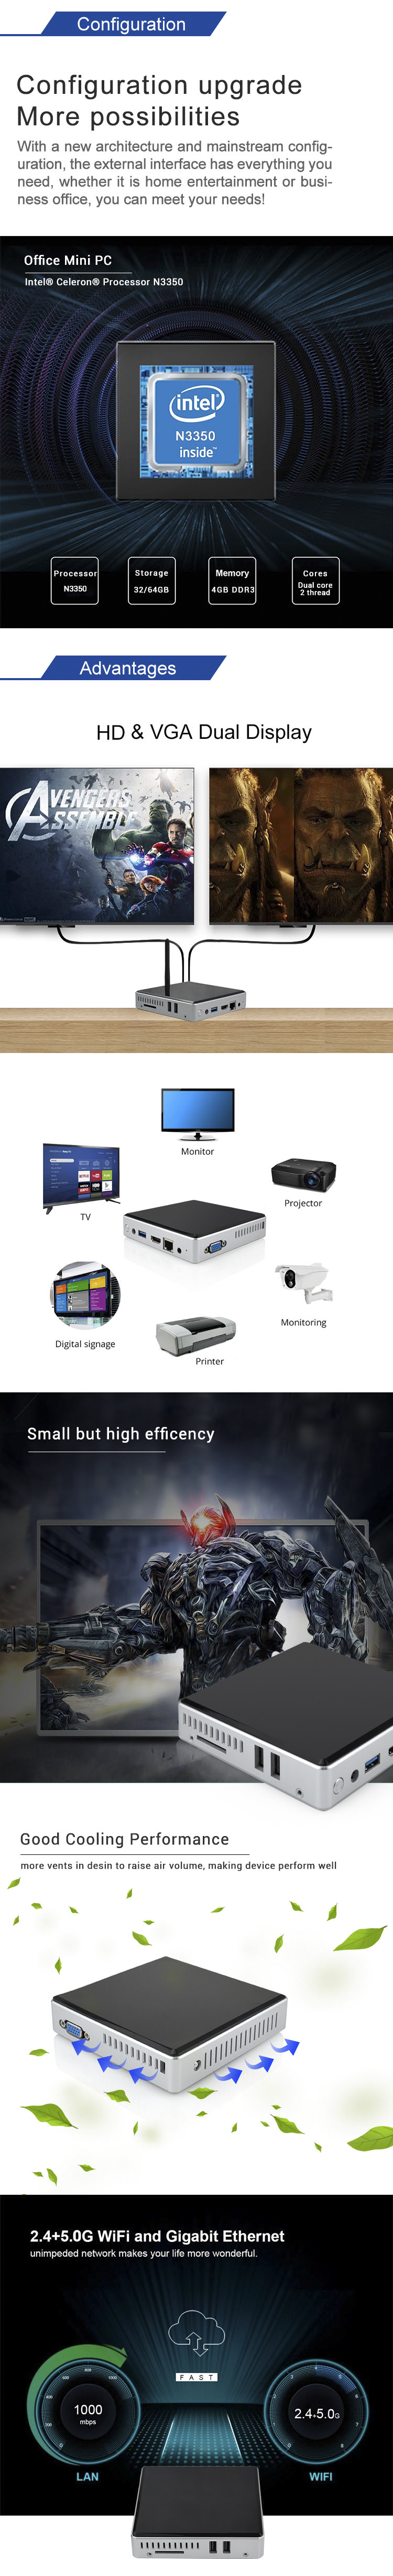 cheap fanless mini pc window10 micro personal desktop computer with low power consumption for office home education